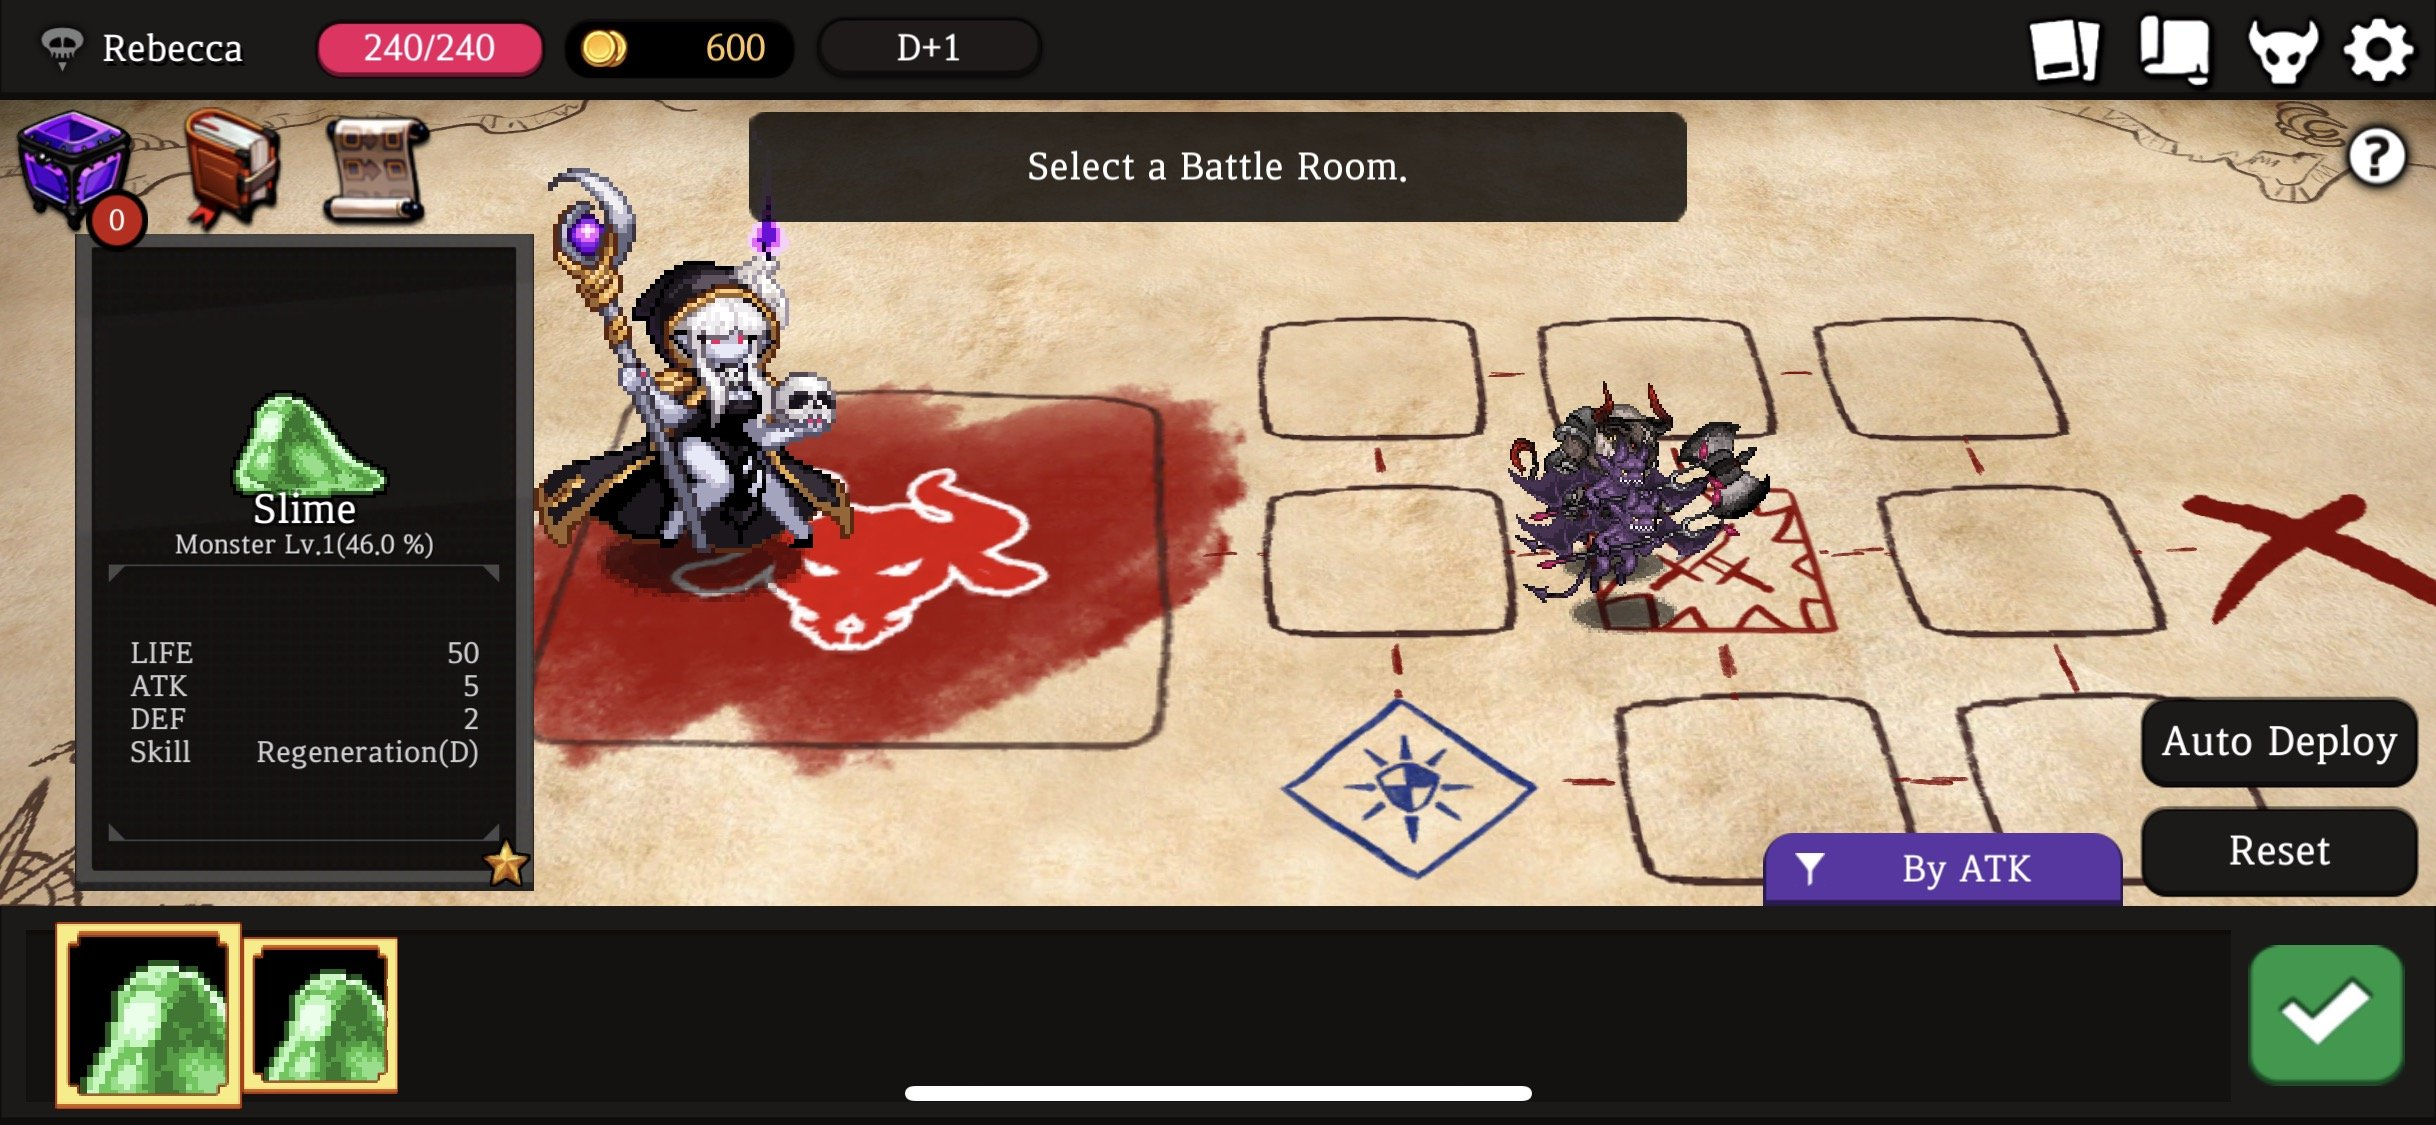 Dungeon Maker: Dark Lord' Tips and Strategies Guide